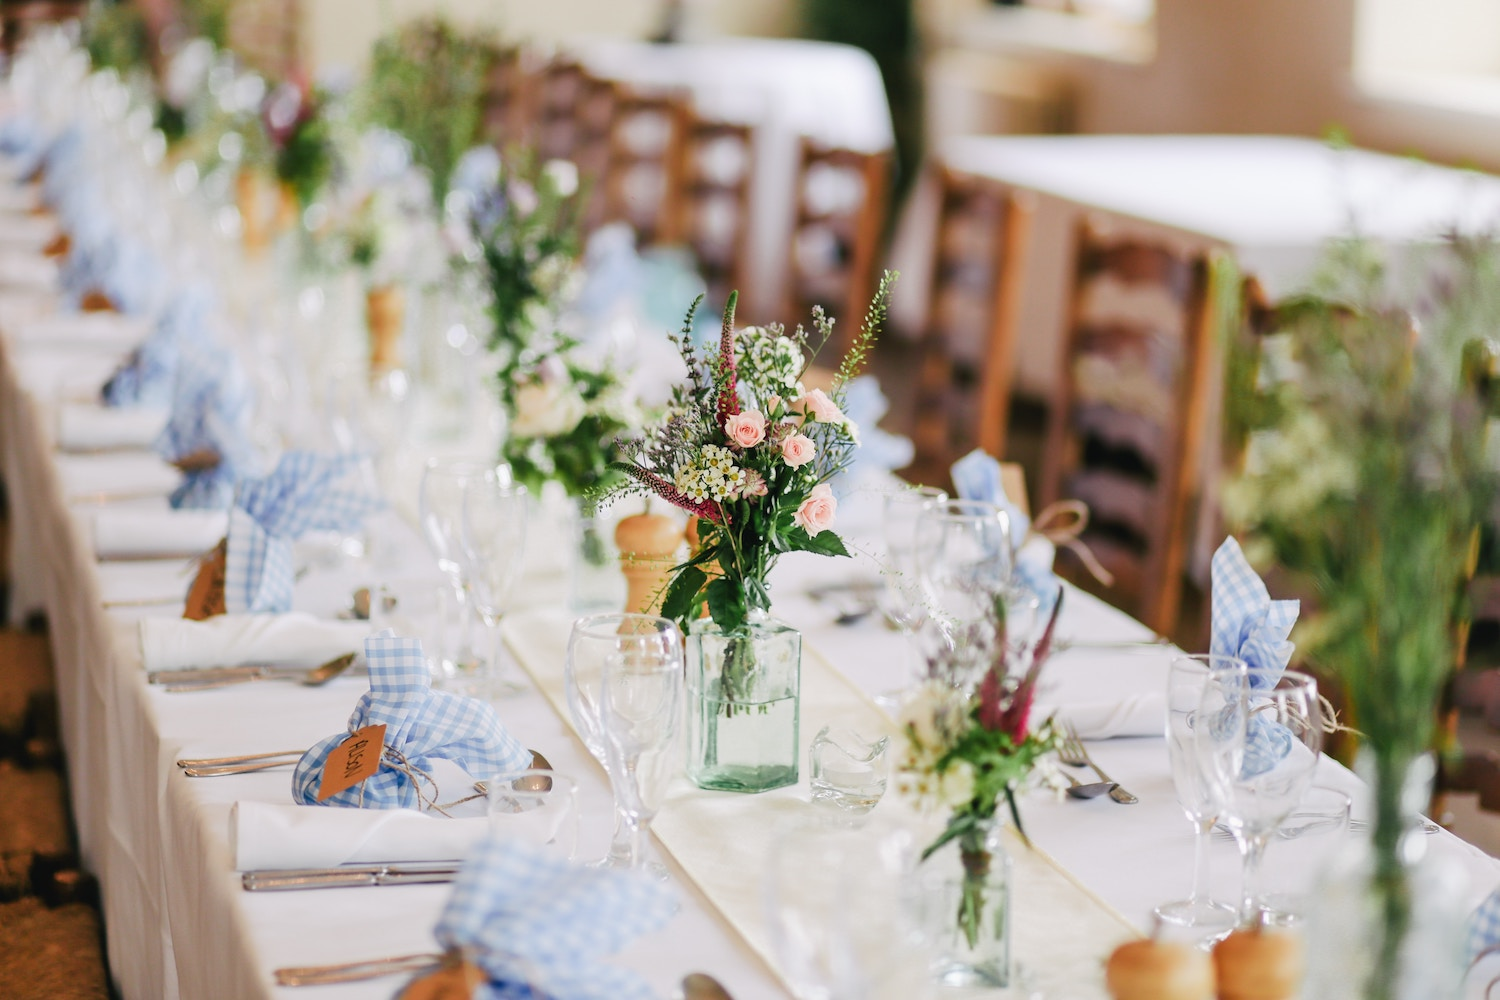 Rehearsal Film - $1500This is a 3-5 min film made to relive the sights and sounds of your rehearsal dinner. We'll be sure to record any speeches or other special moments!